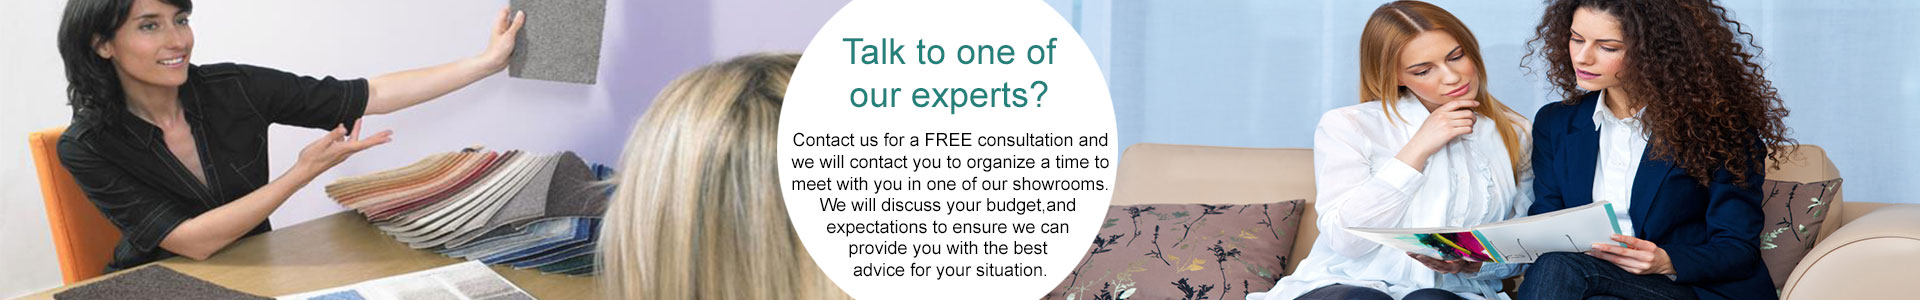 Talk to one of our experts